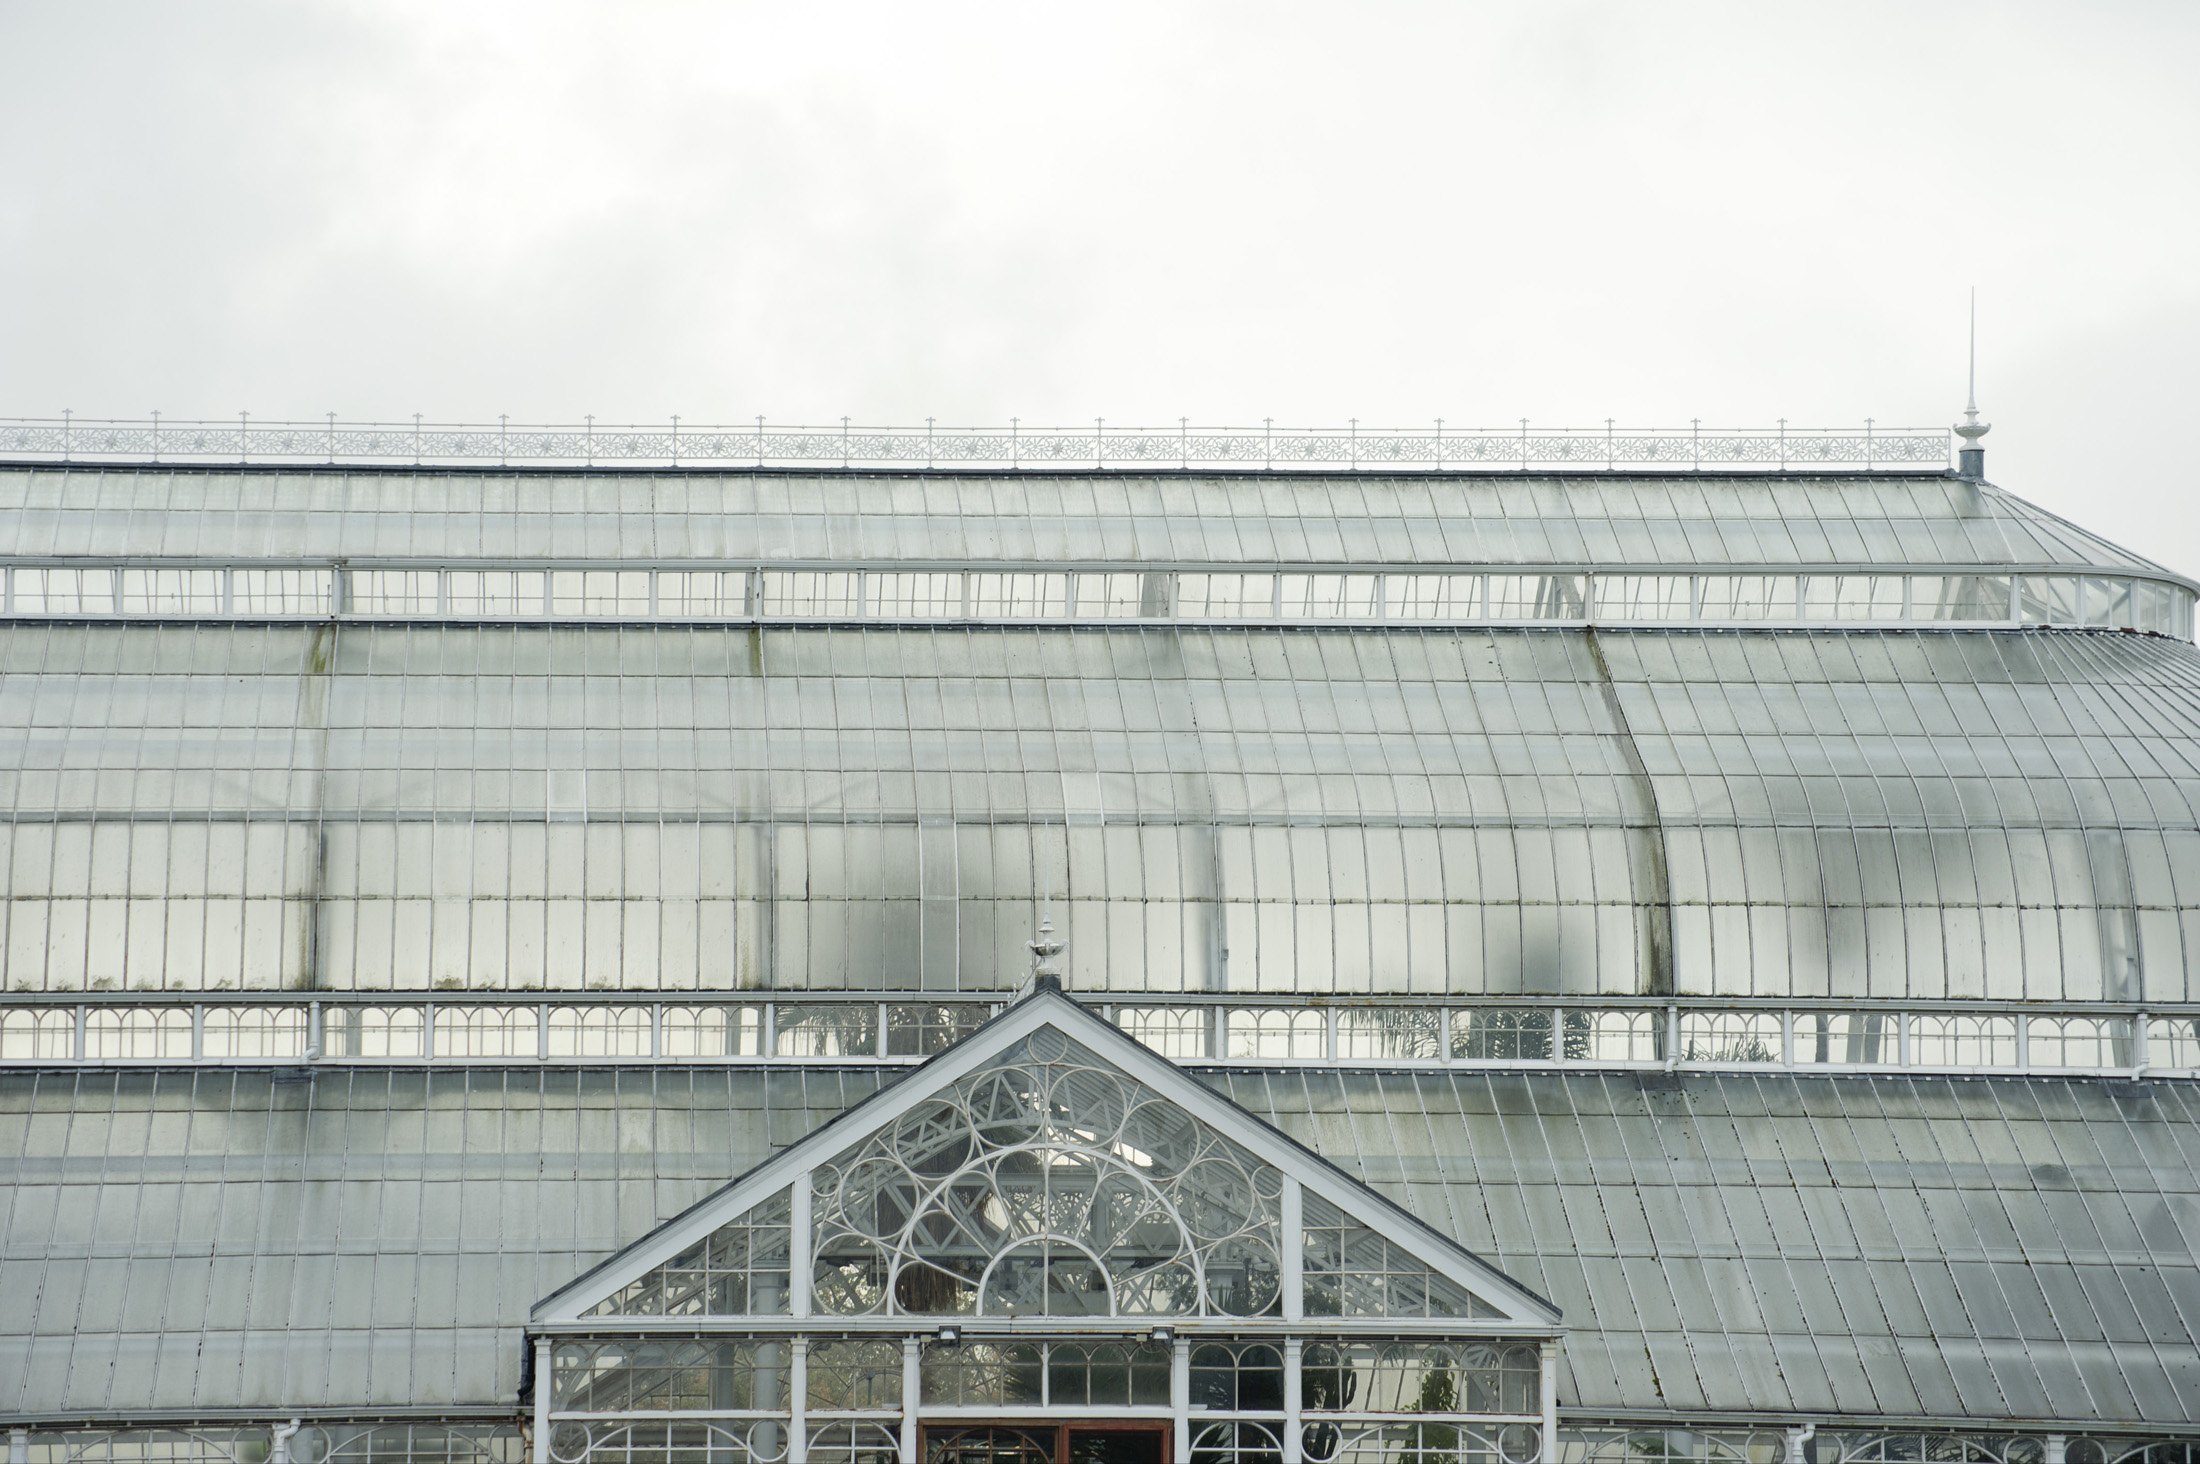 View of the domed roof and exterior facade of the People Palace Winter Gardens in Glasgow, Scotland, a huge Victorian glasshouse which now houses a museum and exhibitions